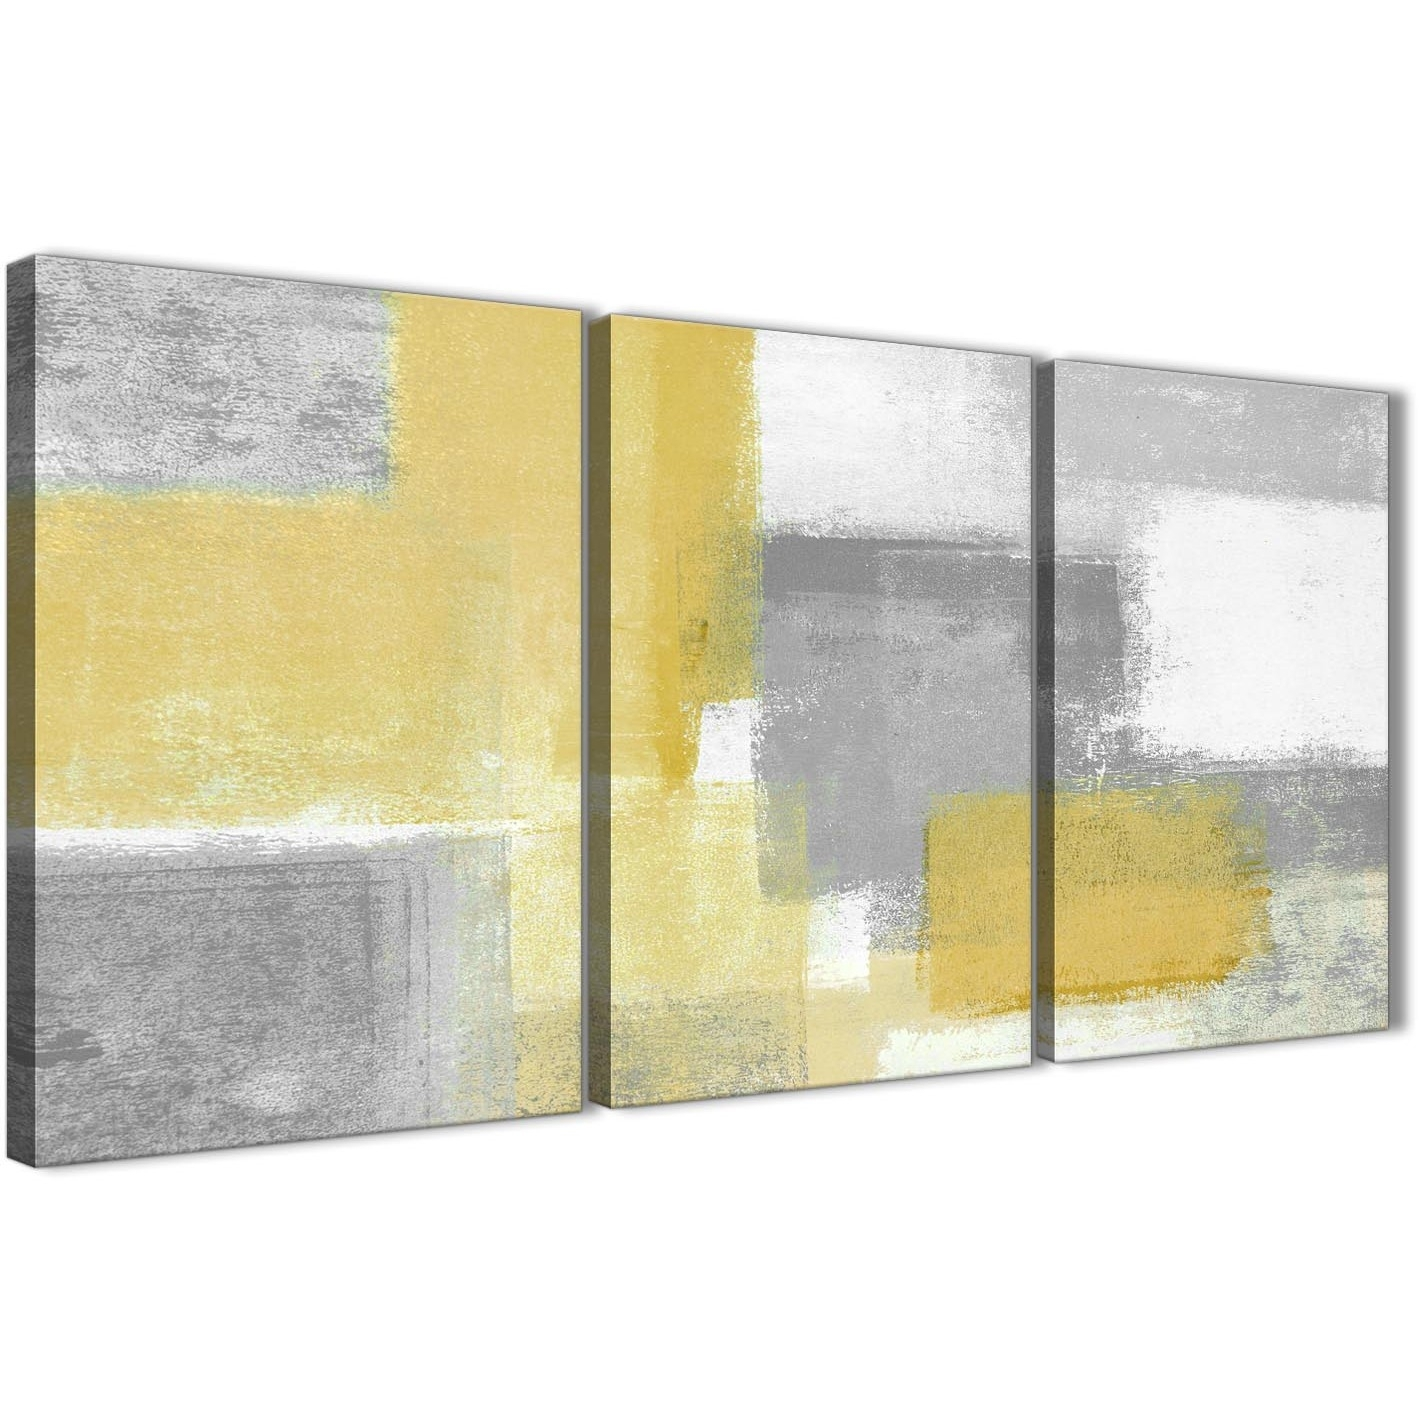 3 Panel Mustard Yellow Grey Kitchen Canvas Wall Art Decor In Most Current Grey Canvas Wall Art (View 6 of 15)